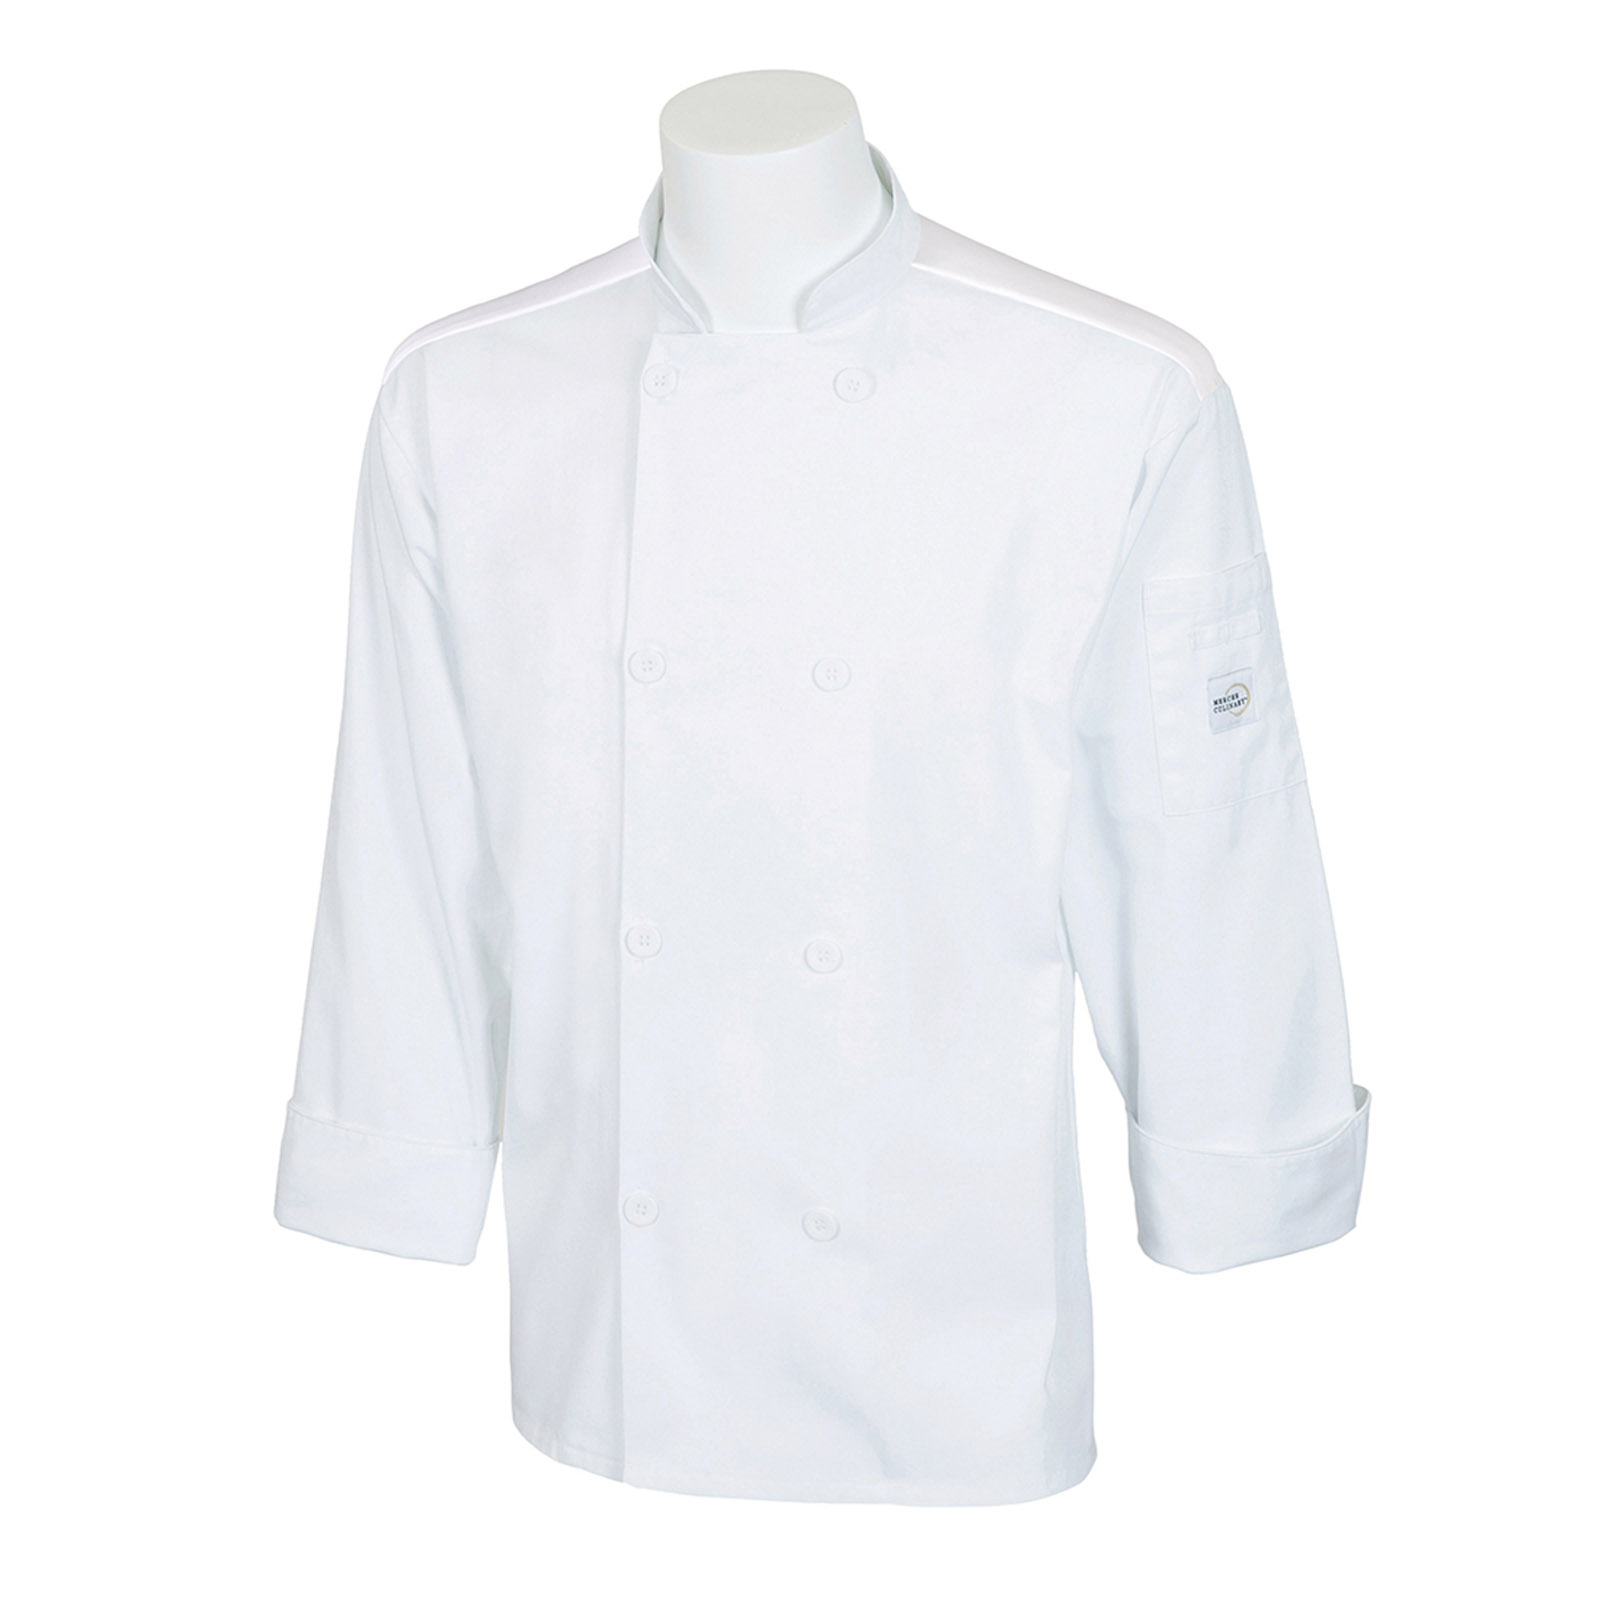 Mercer Culinary M60017WHM chef's coat